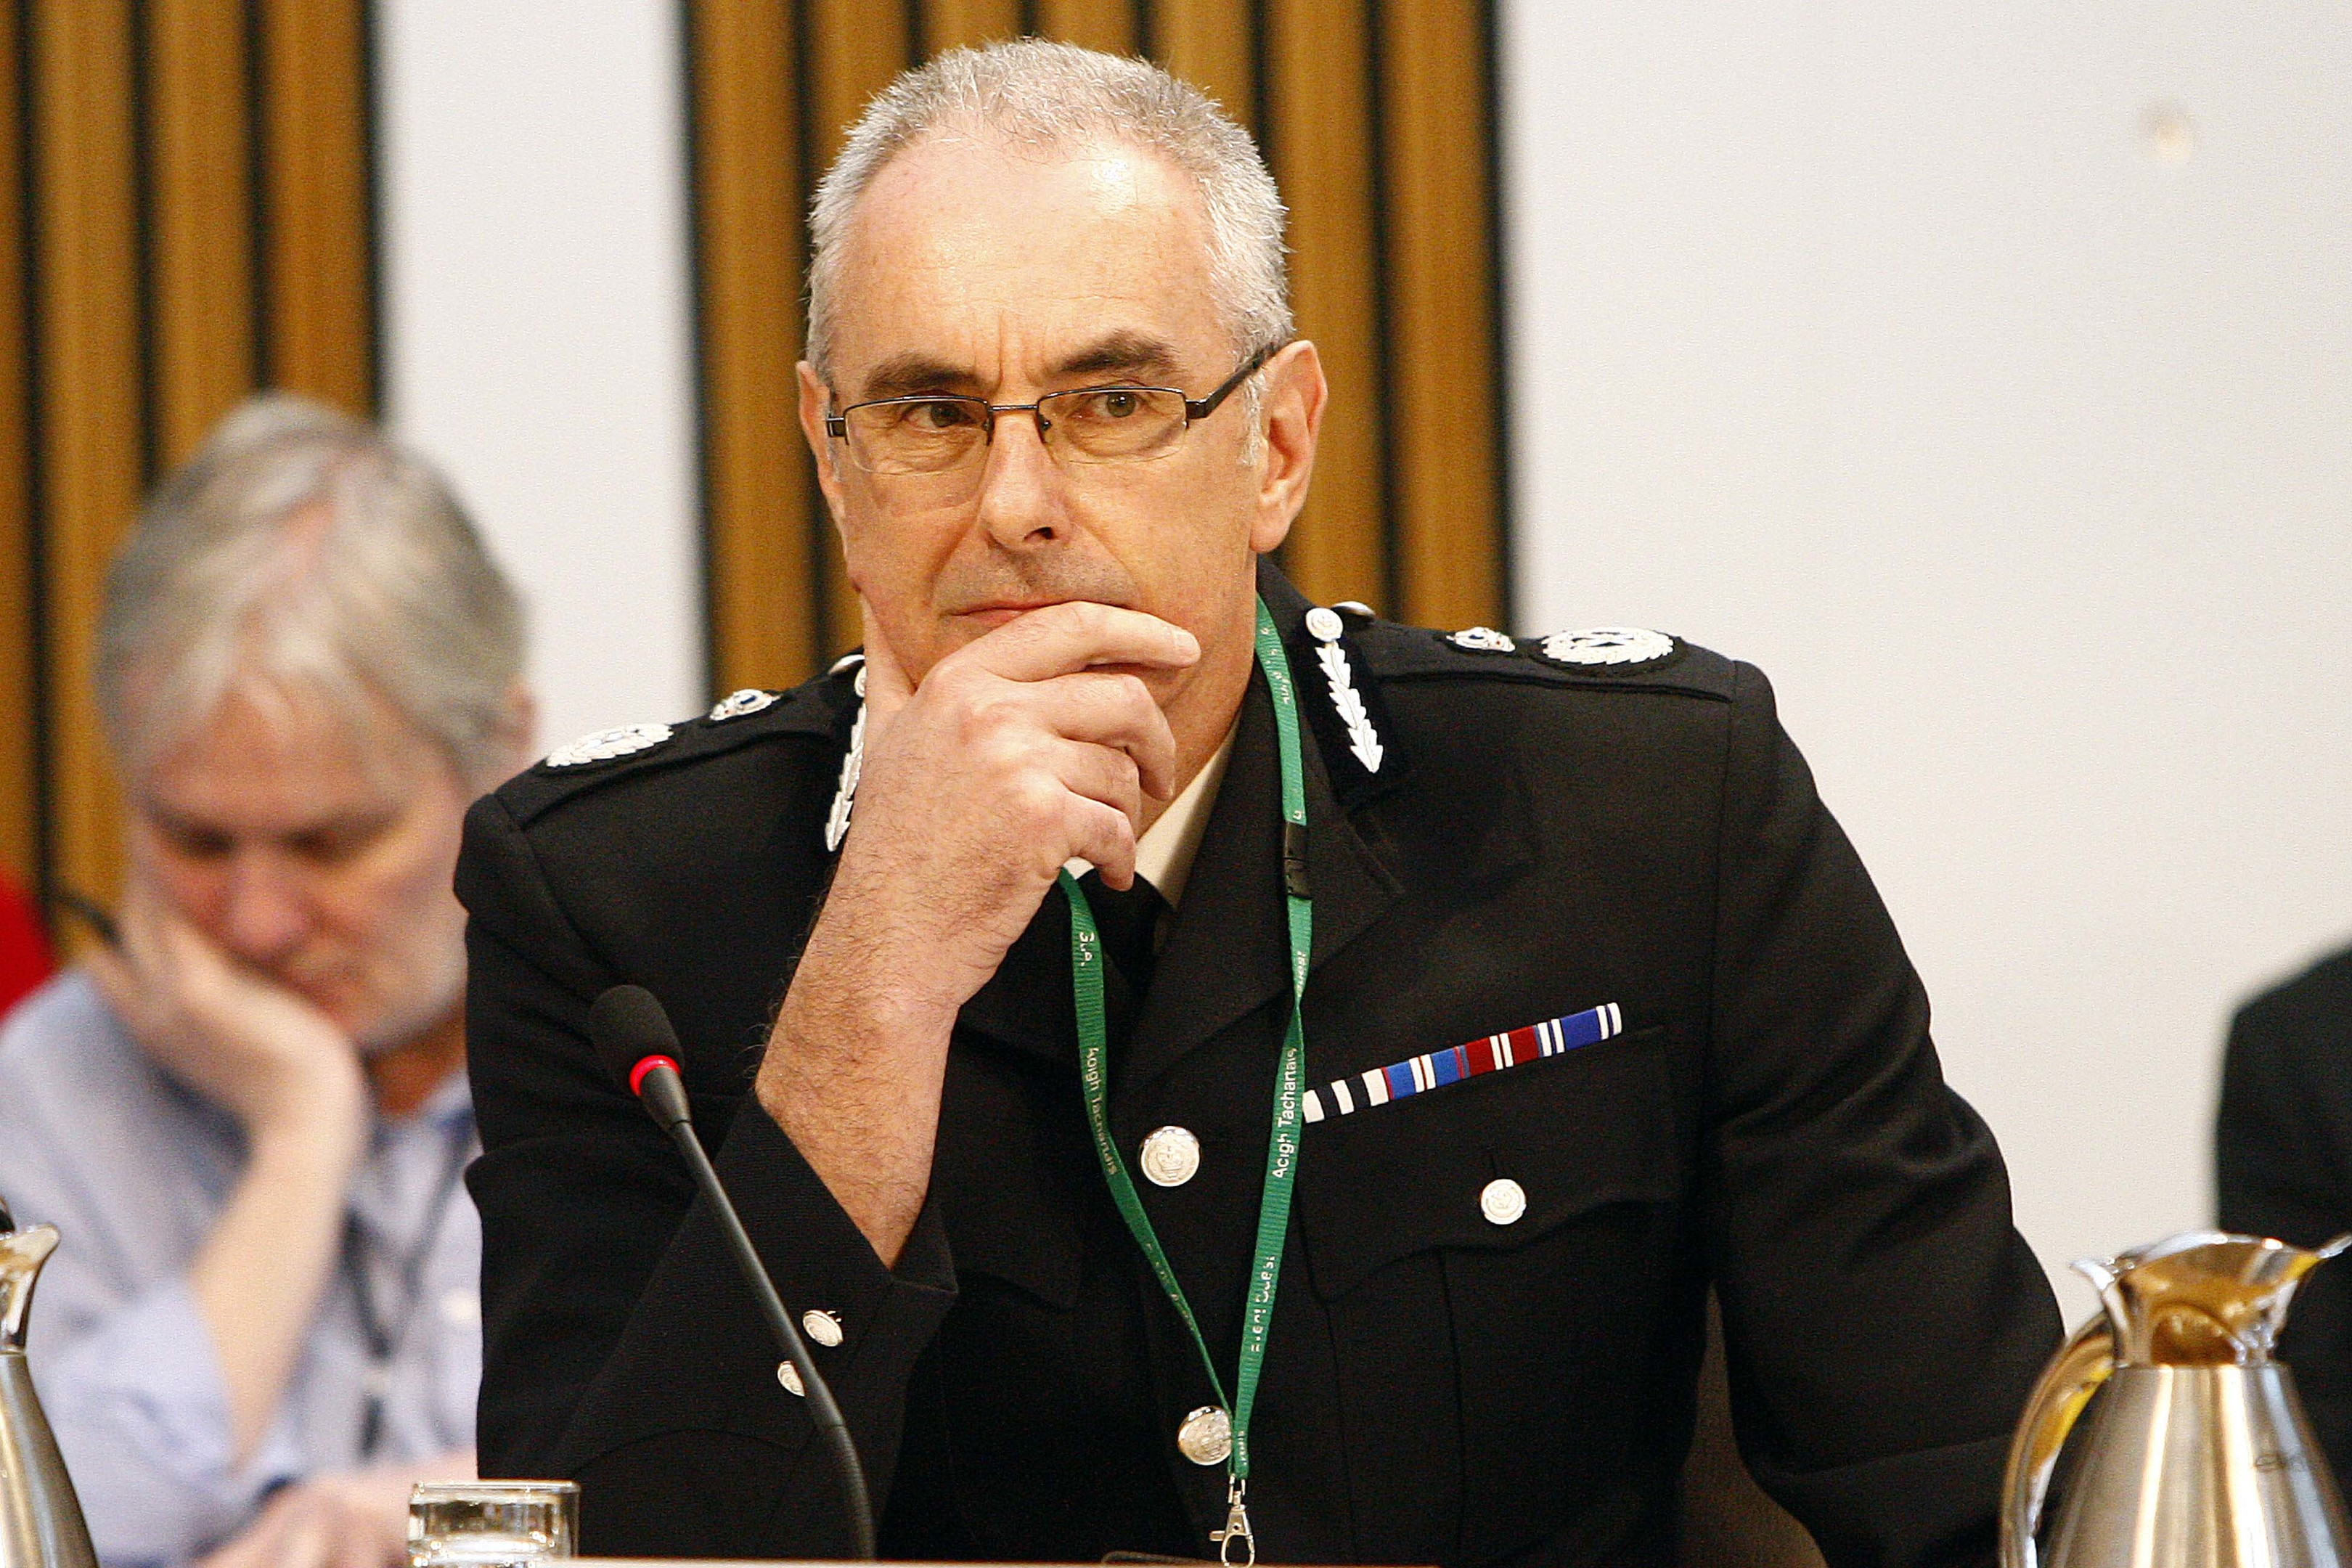 Chief Constable Philip Gormley